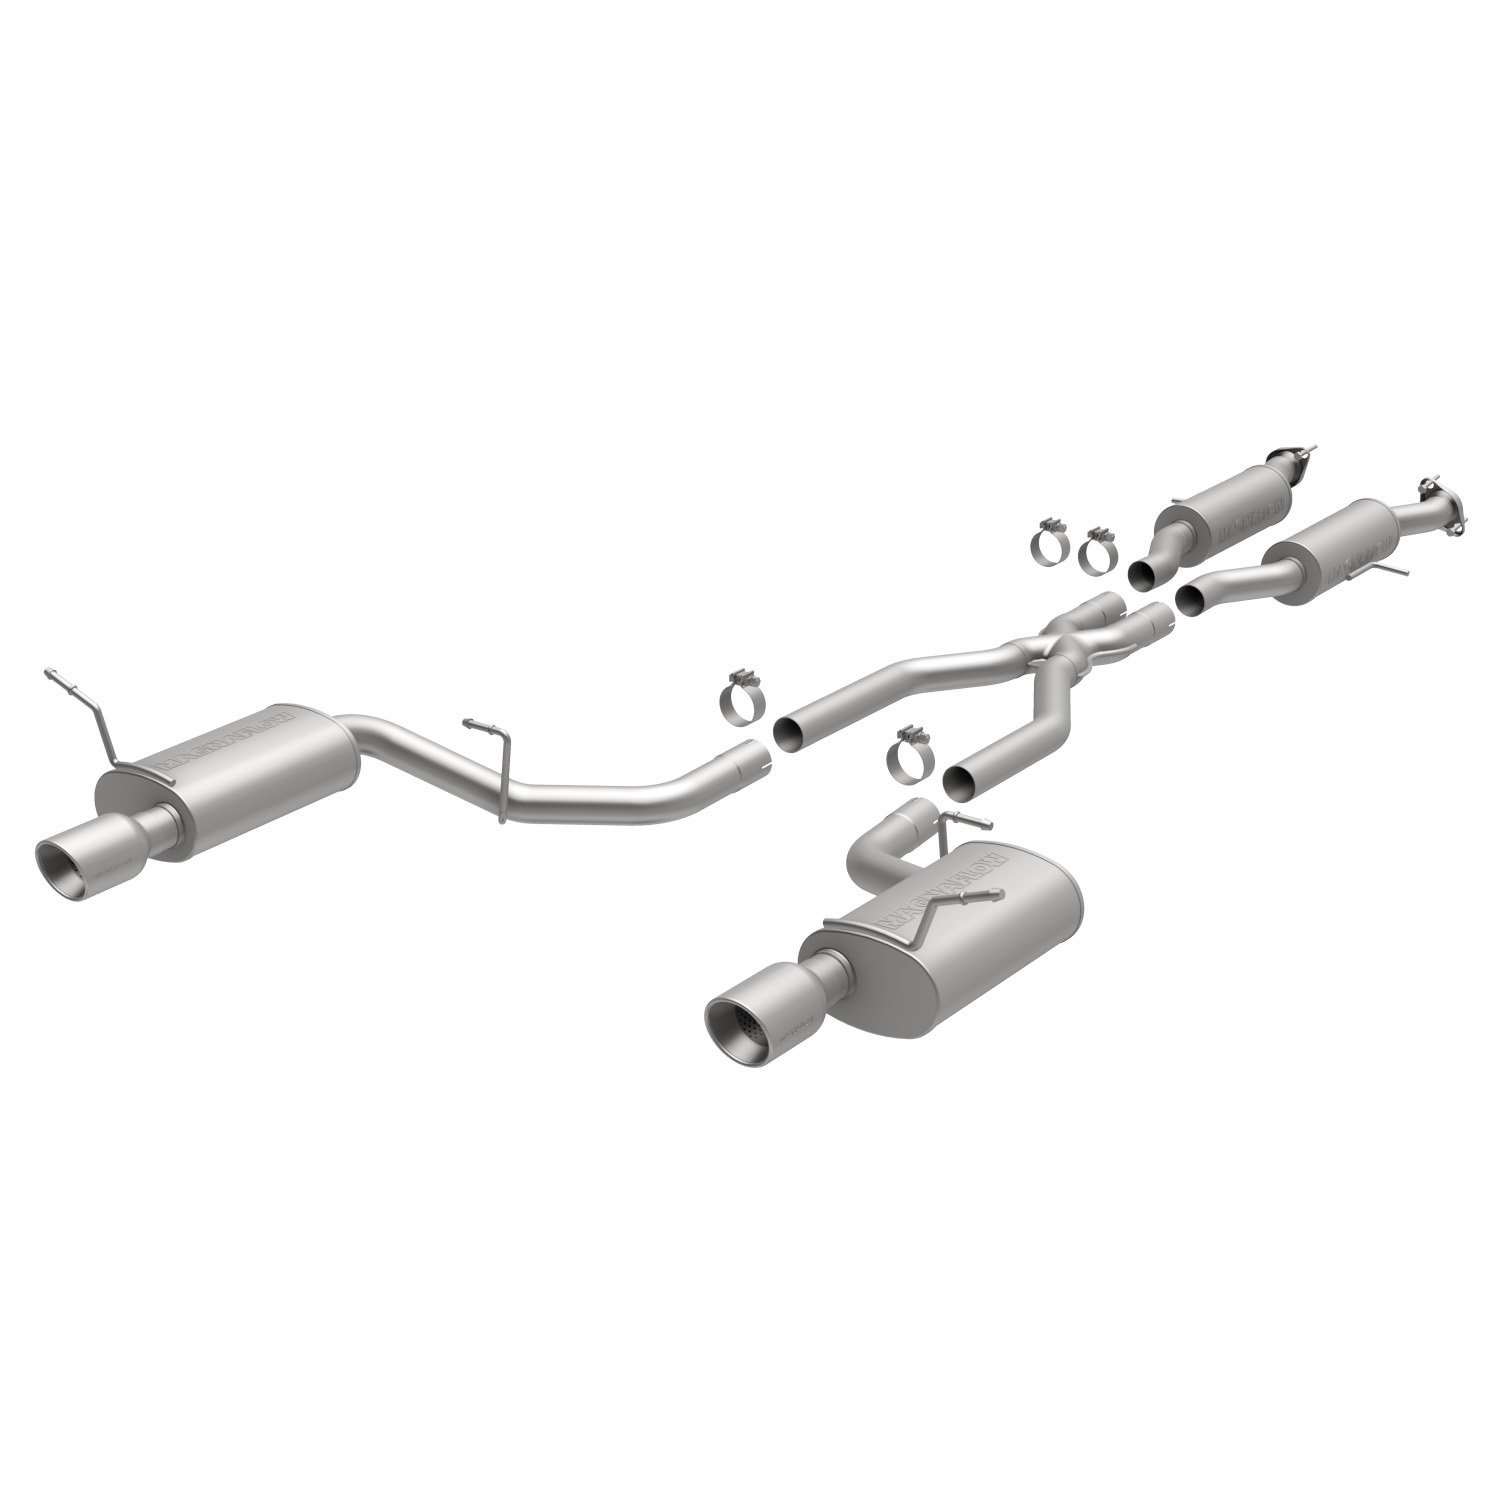 Magnaflow 15068 Cat Back Exhaust